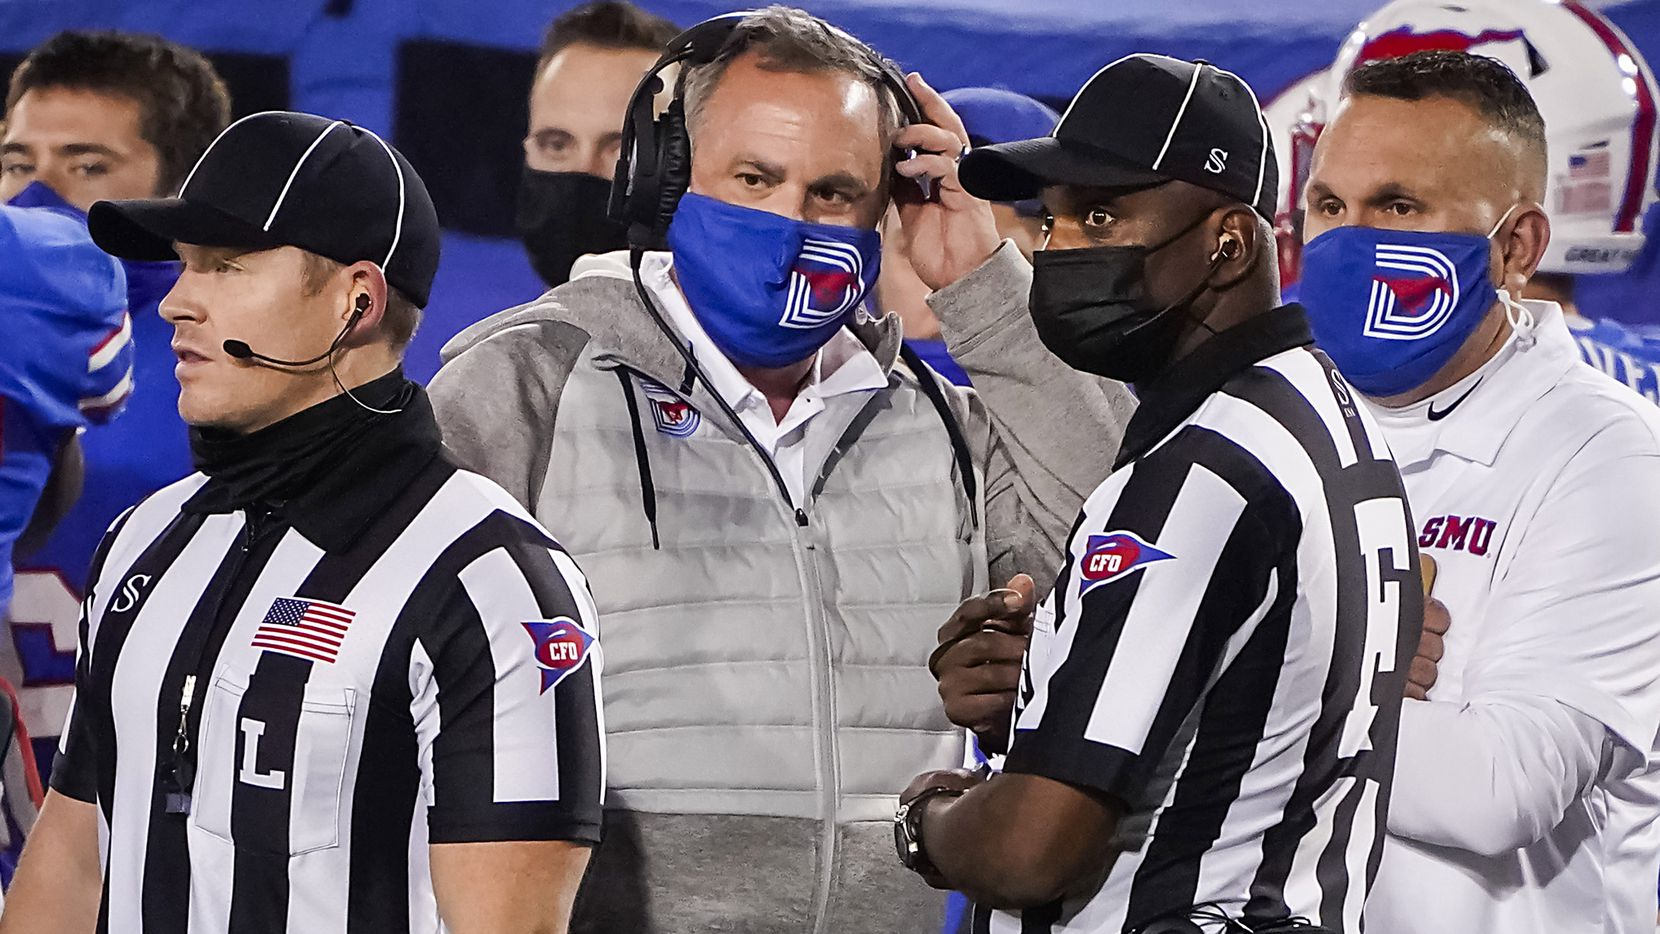 SMU head coach Sonny Dykes talks to officials during the fourth quarter of an NCAA football game against Navy at Ford Stadium on Saturday, Oct. 31, 2020, in Dallas. (Smiley N. Pool/The Dallas Morning News)